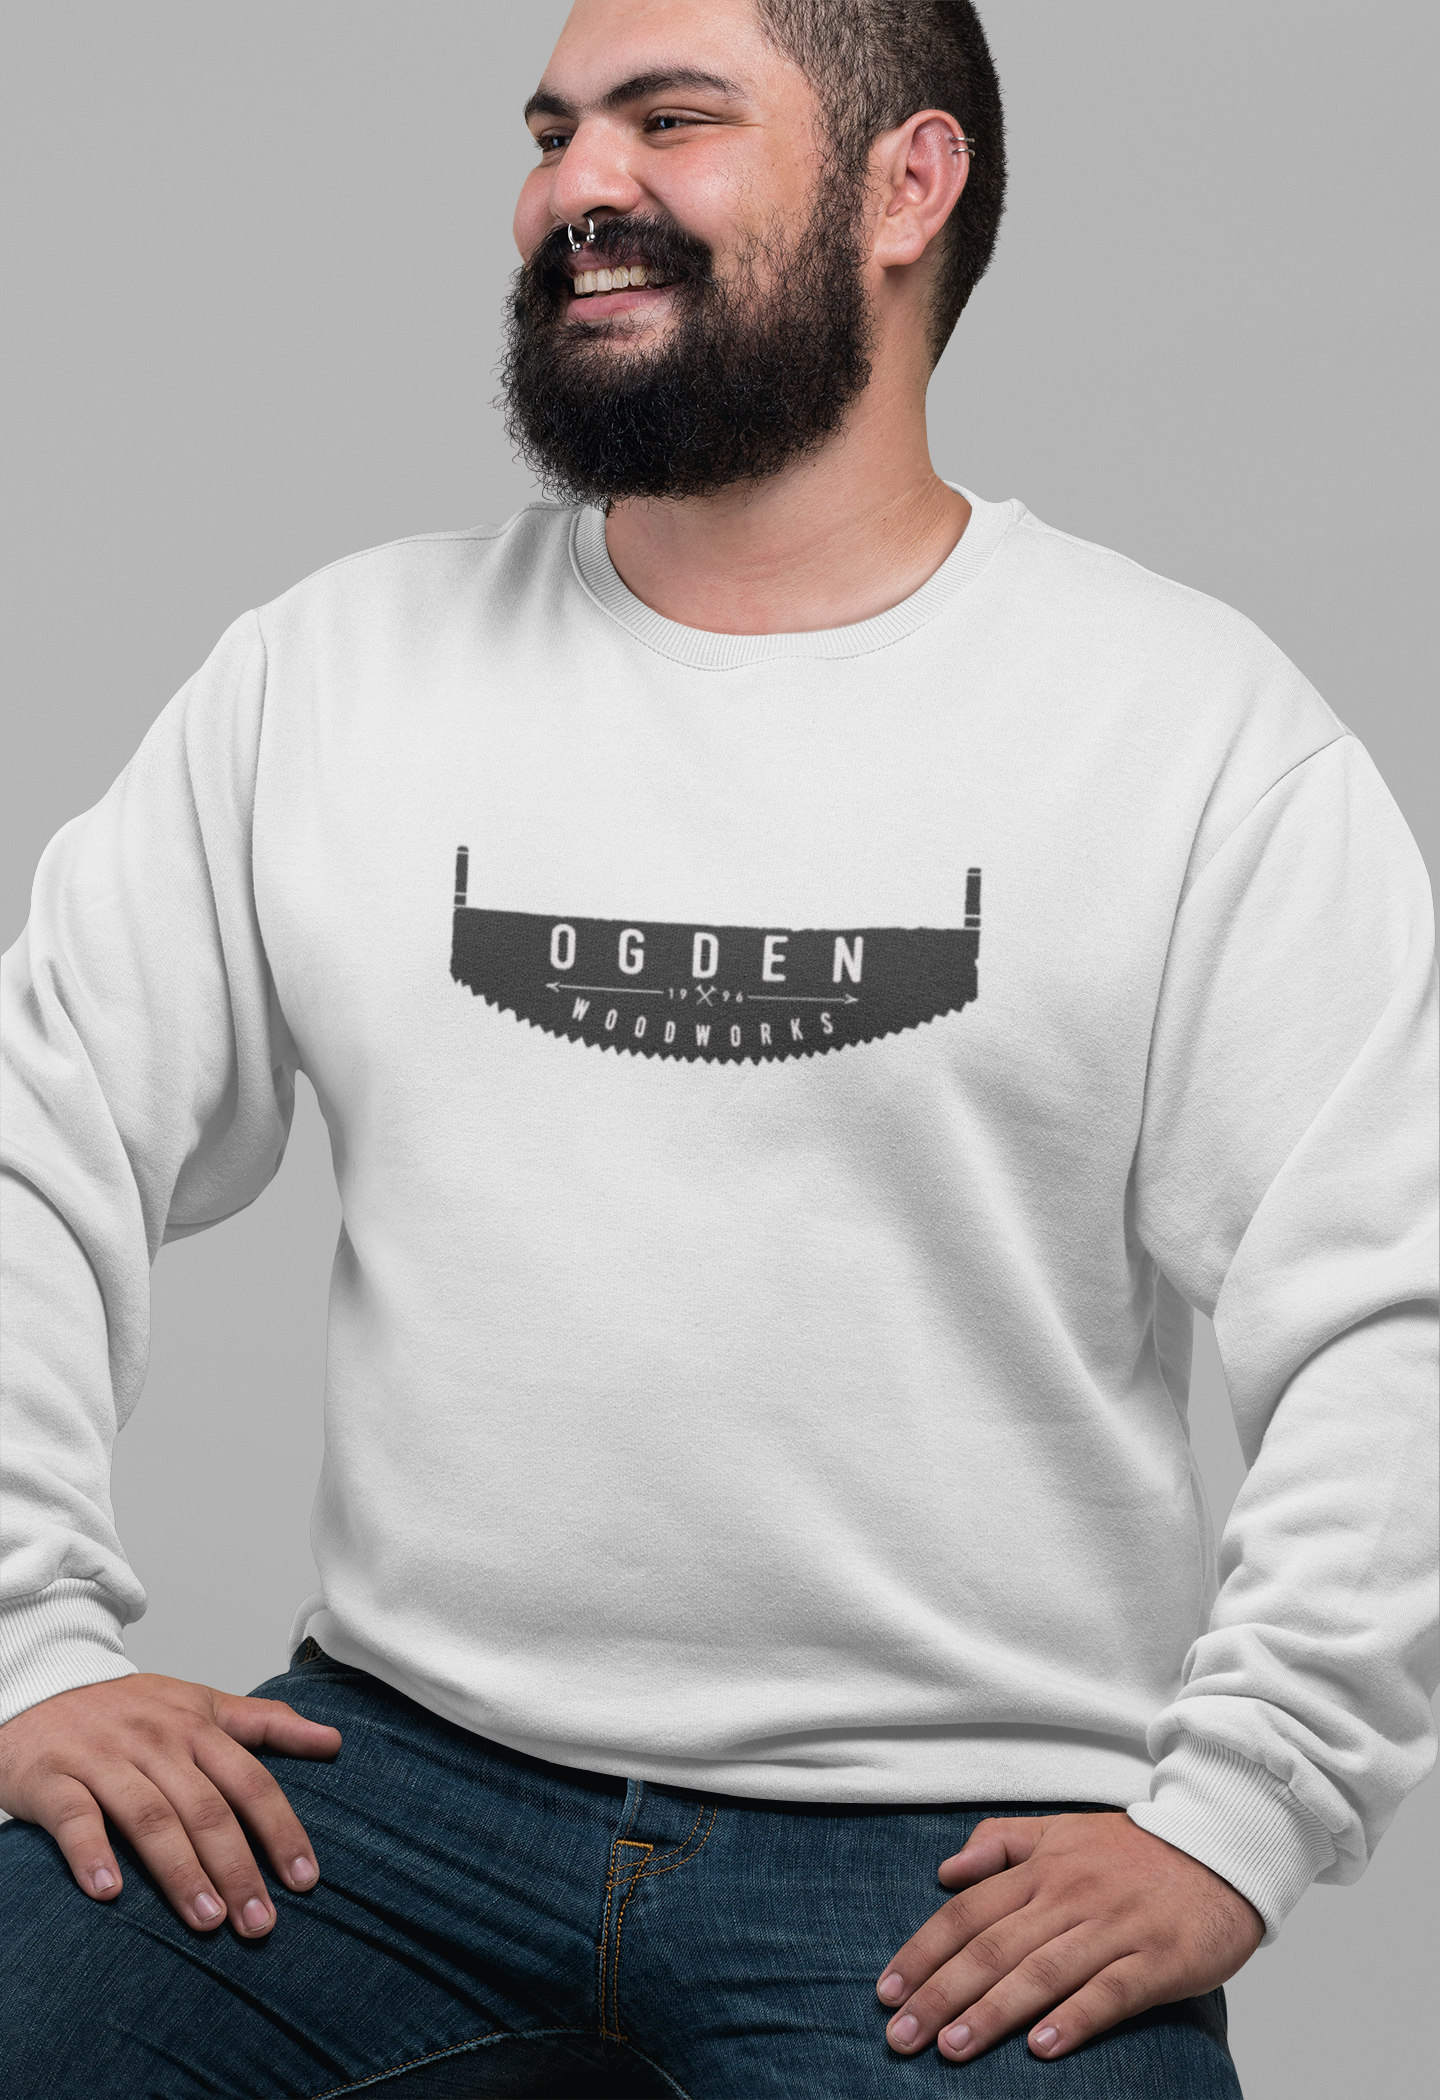 plus-size-crewneck-sweatshirt-mockup-of-